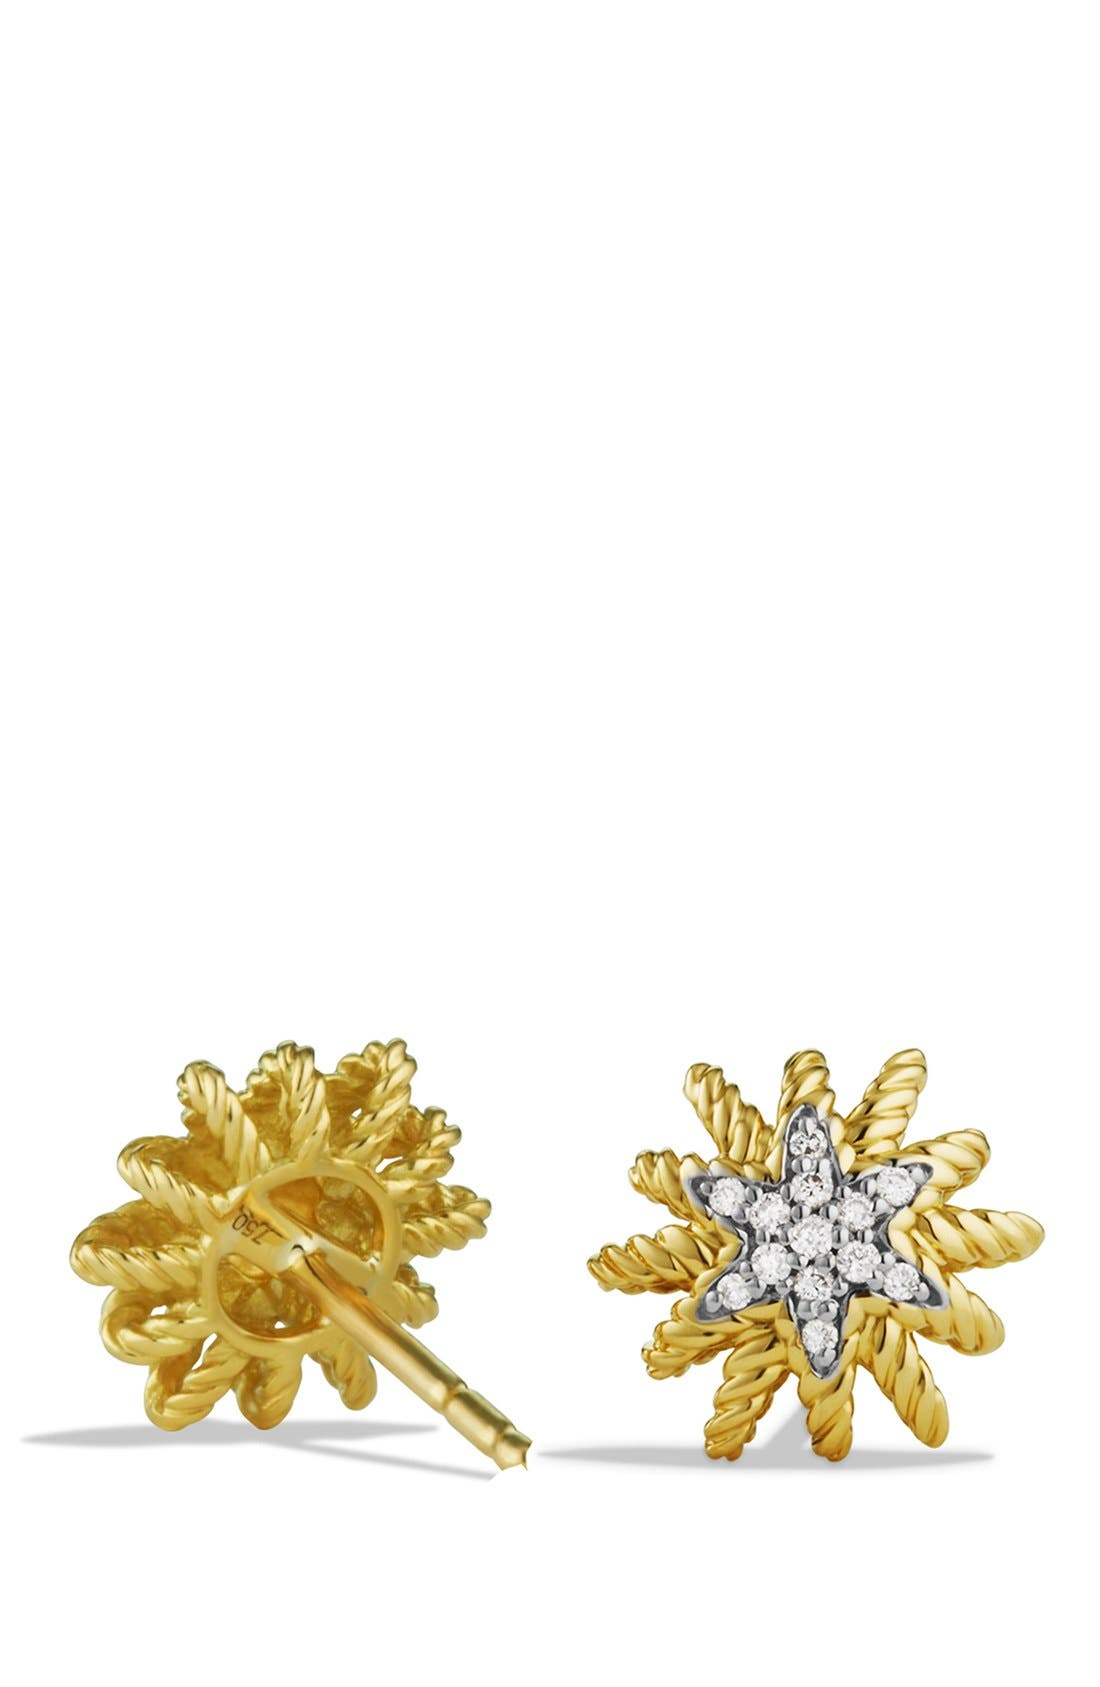 'Starburst' Mini Earrings with Diamonds in Gold,                             Alternate thumbnail 3, color,                             YELLOW GOLD